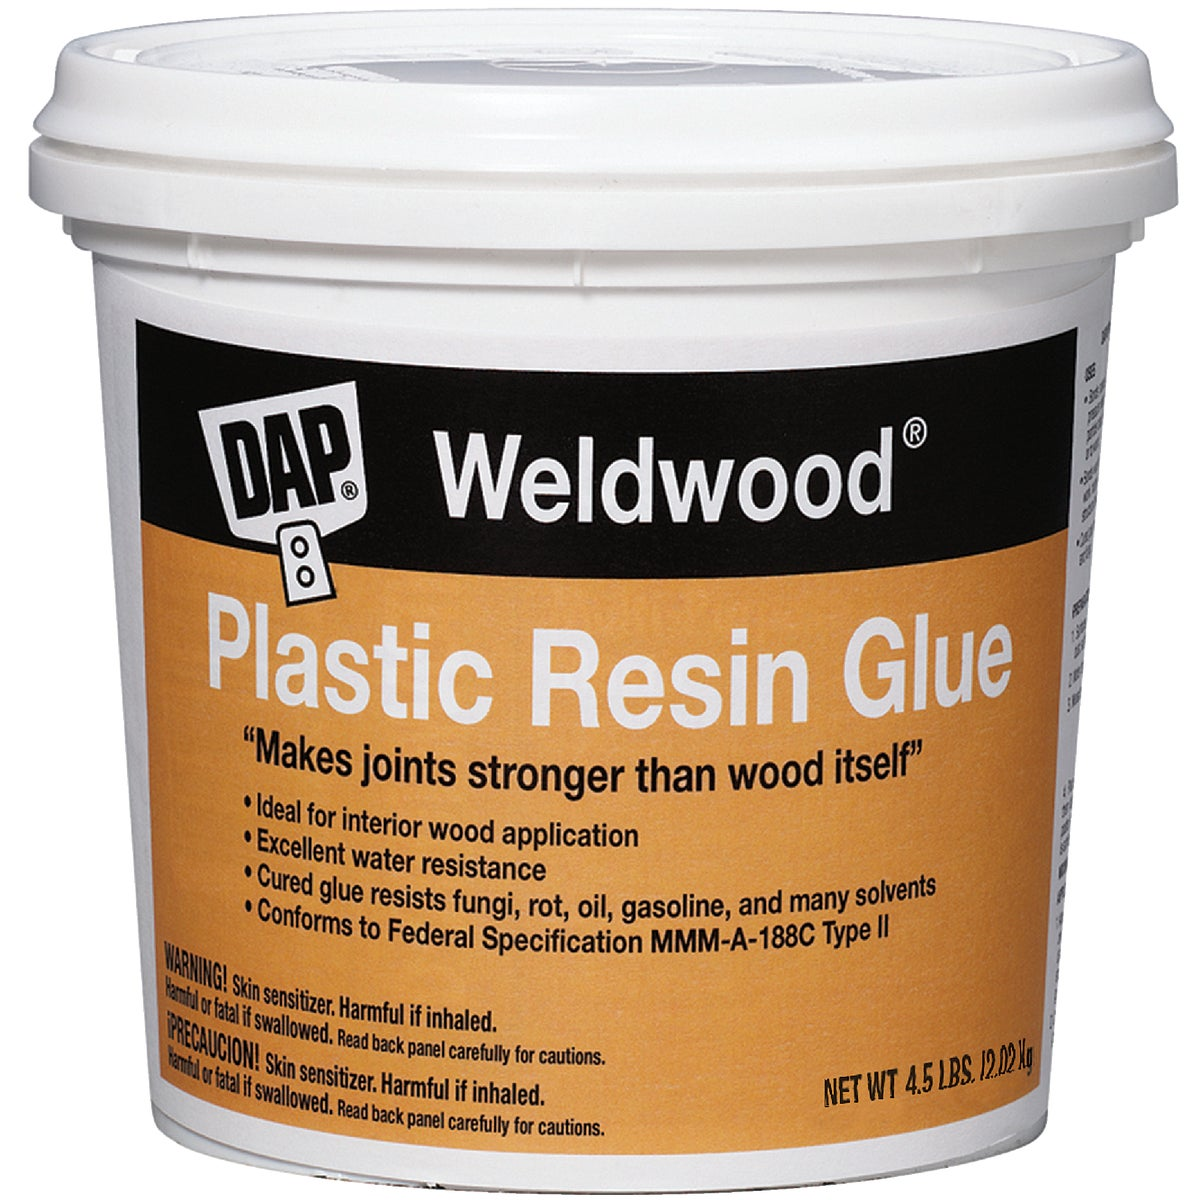 4-1/2LB PLST RESIN GLUE - 00204 by Dap Inc